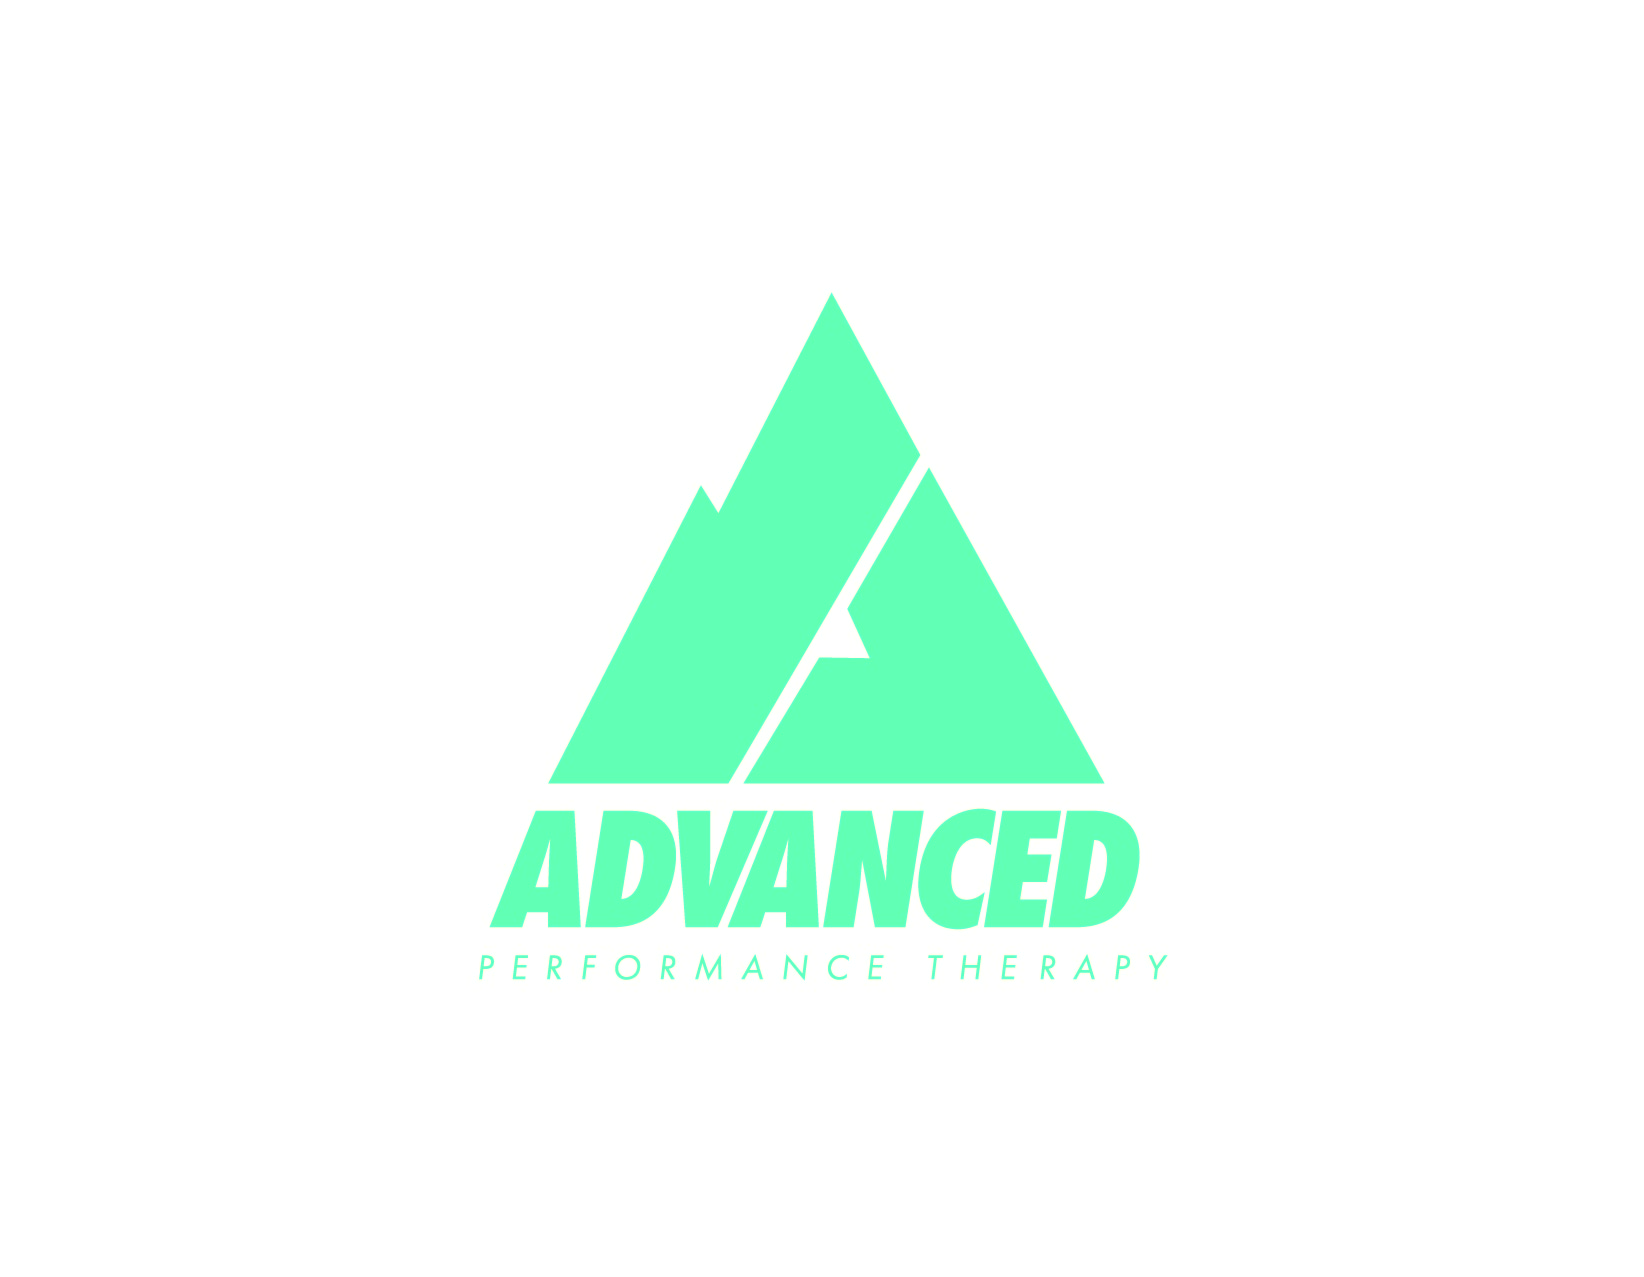 Advanced Performance Therapy